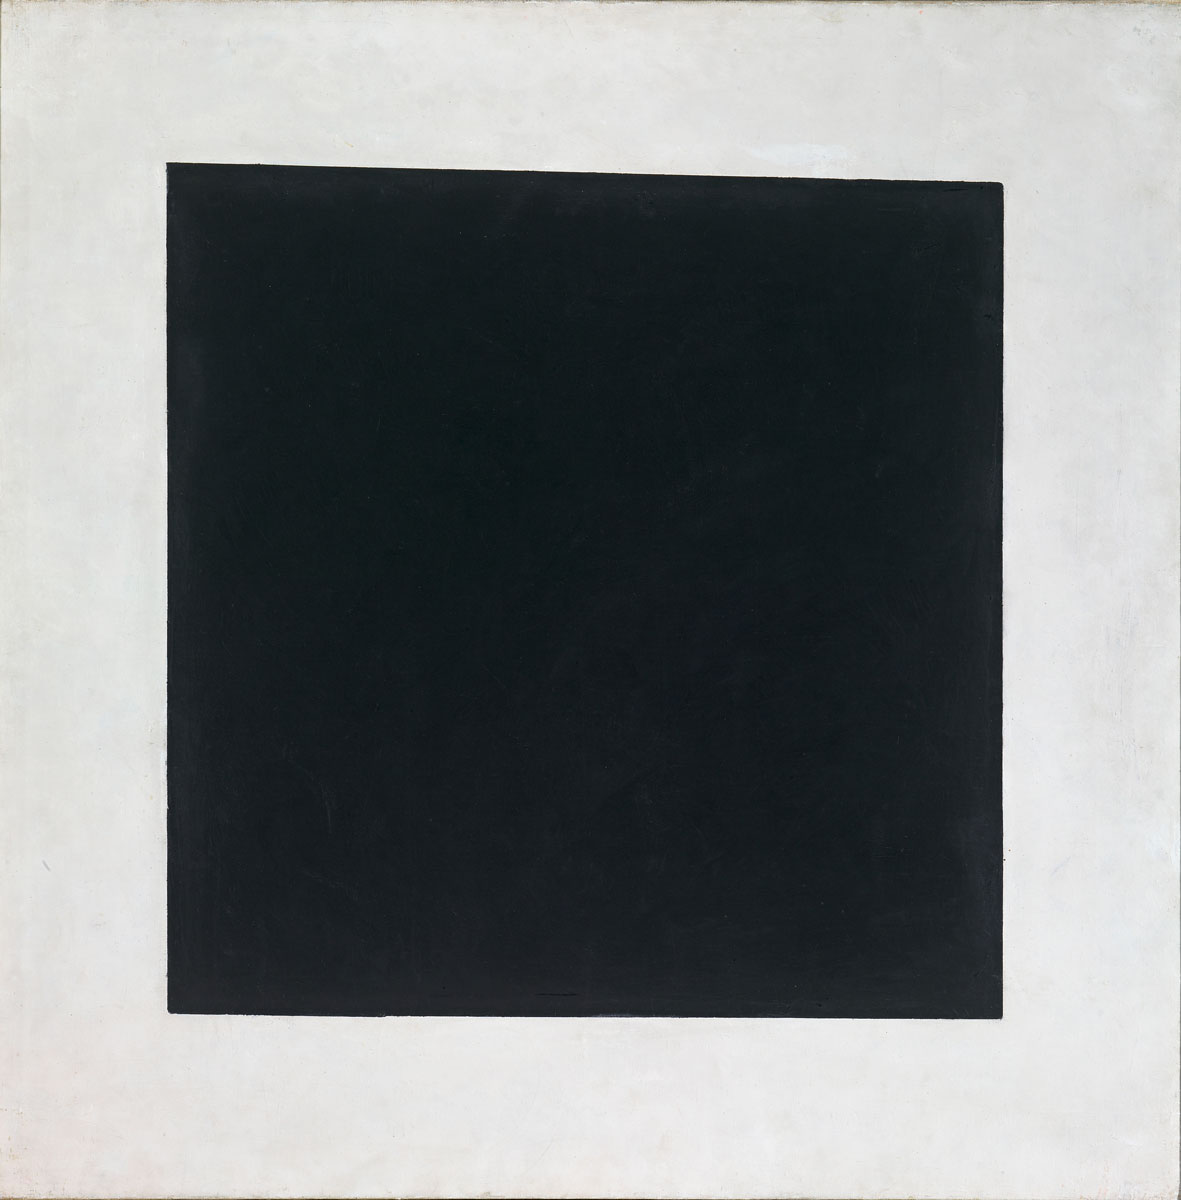 2.-Kazimir-Malevich-Black-Square-1929.-Collection-The-State-Tretyakov-Gallery..jpg